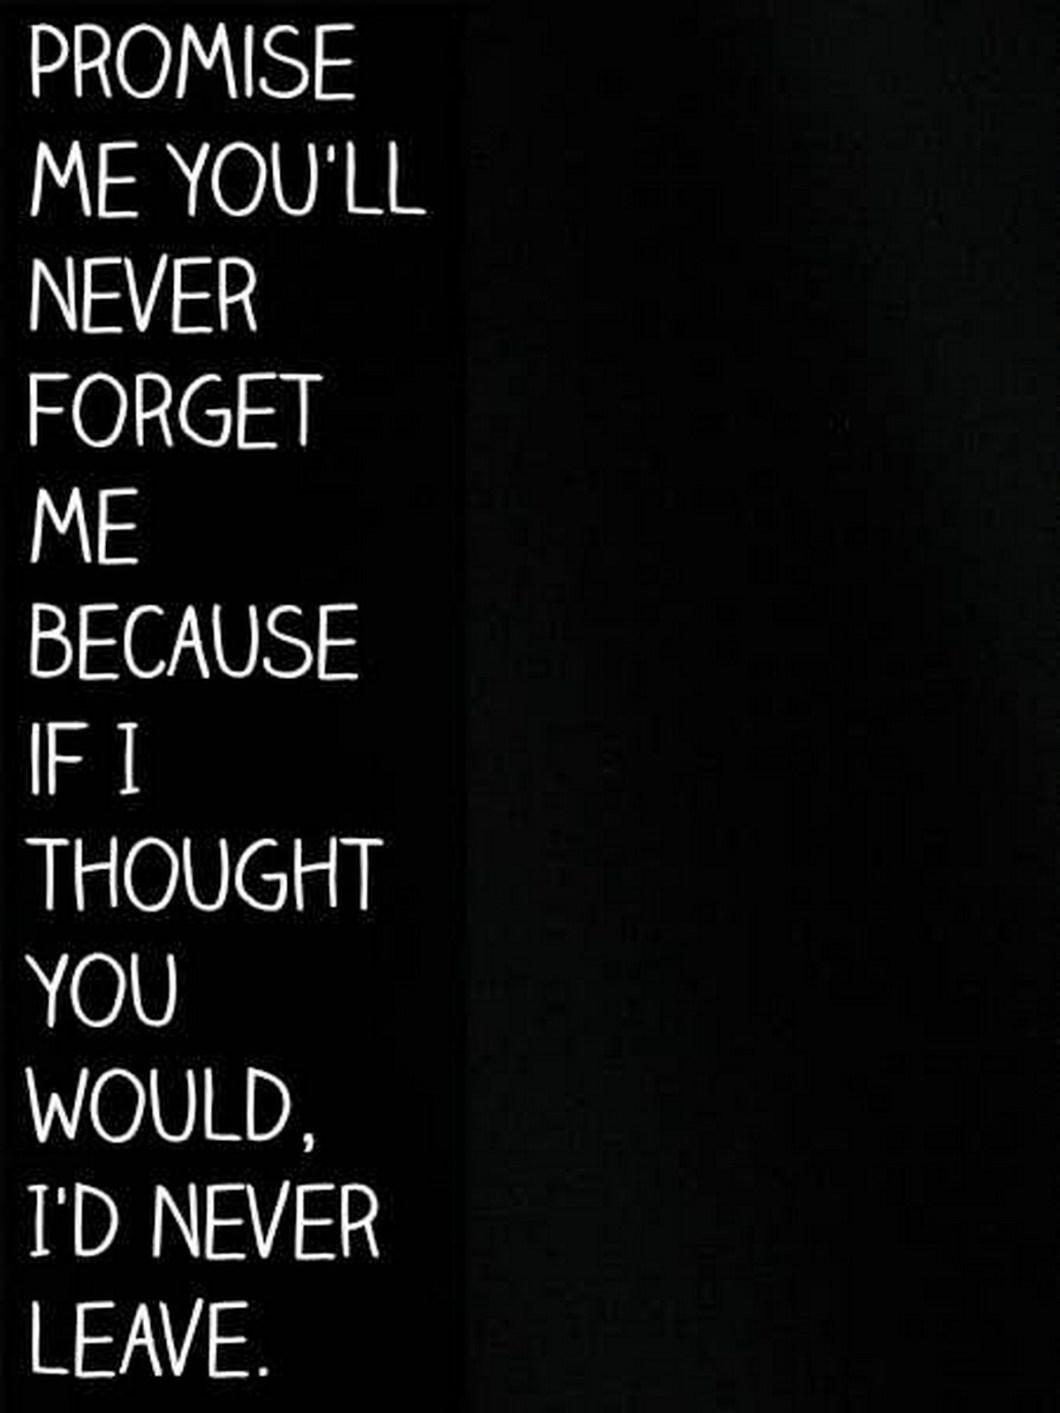 """55 Romantic Quotes - """"Promise me you'll never forget me because if I thought you would, I'd never leave."""""""